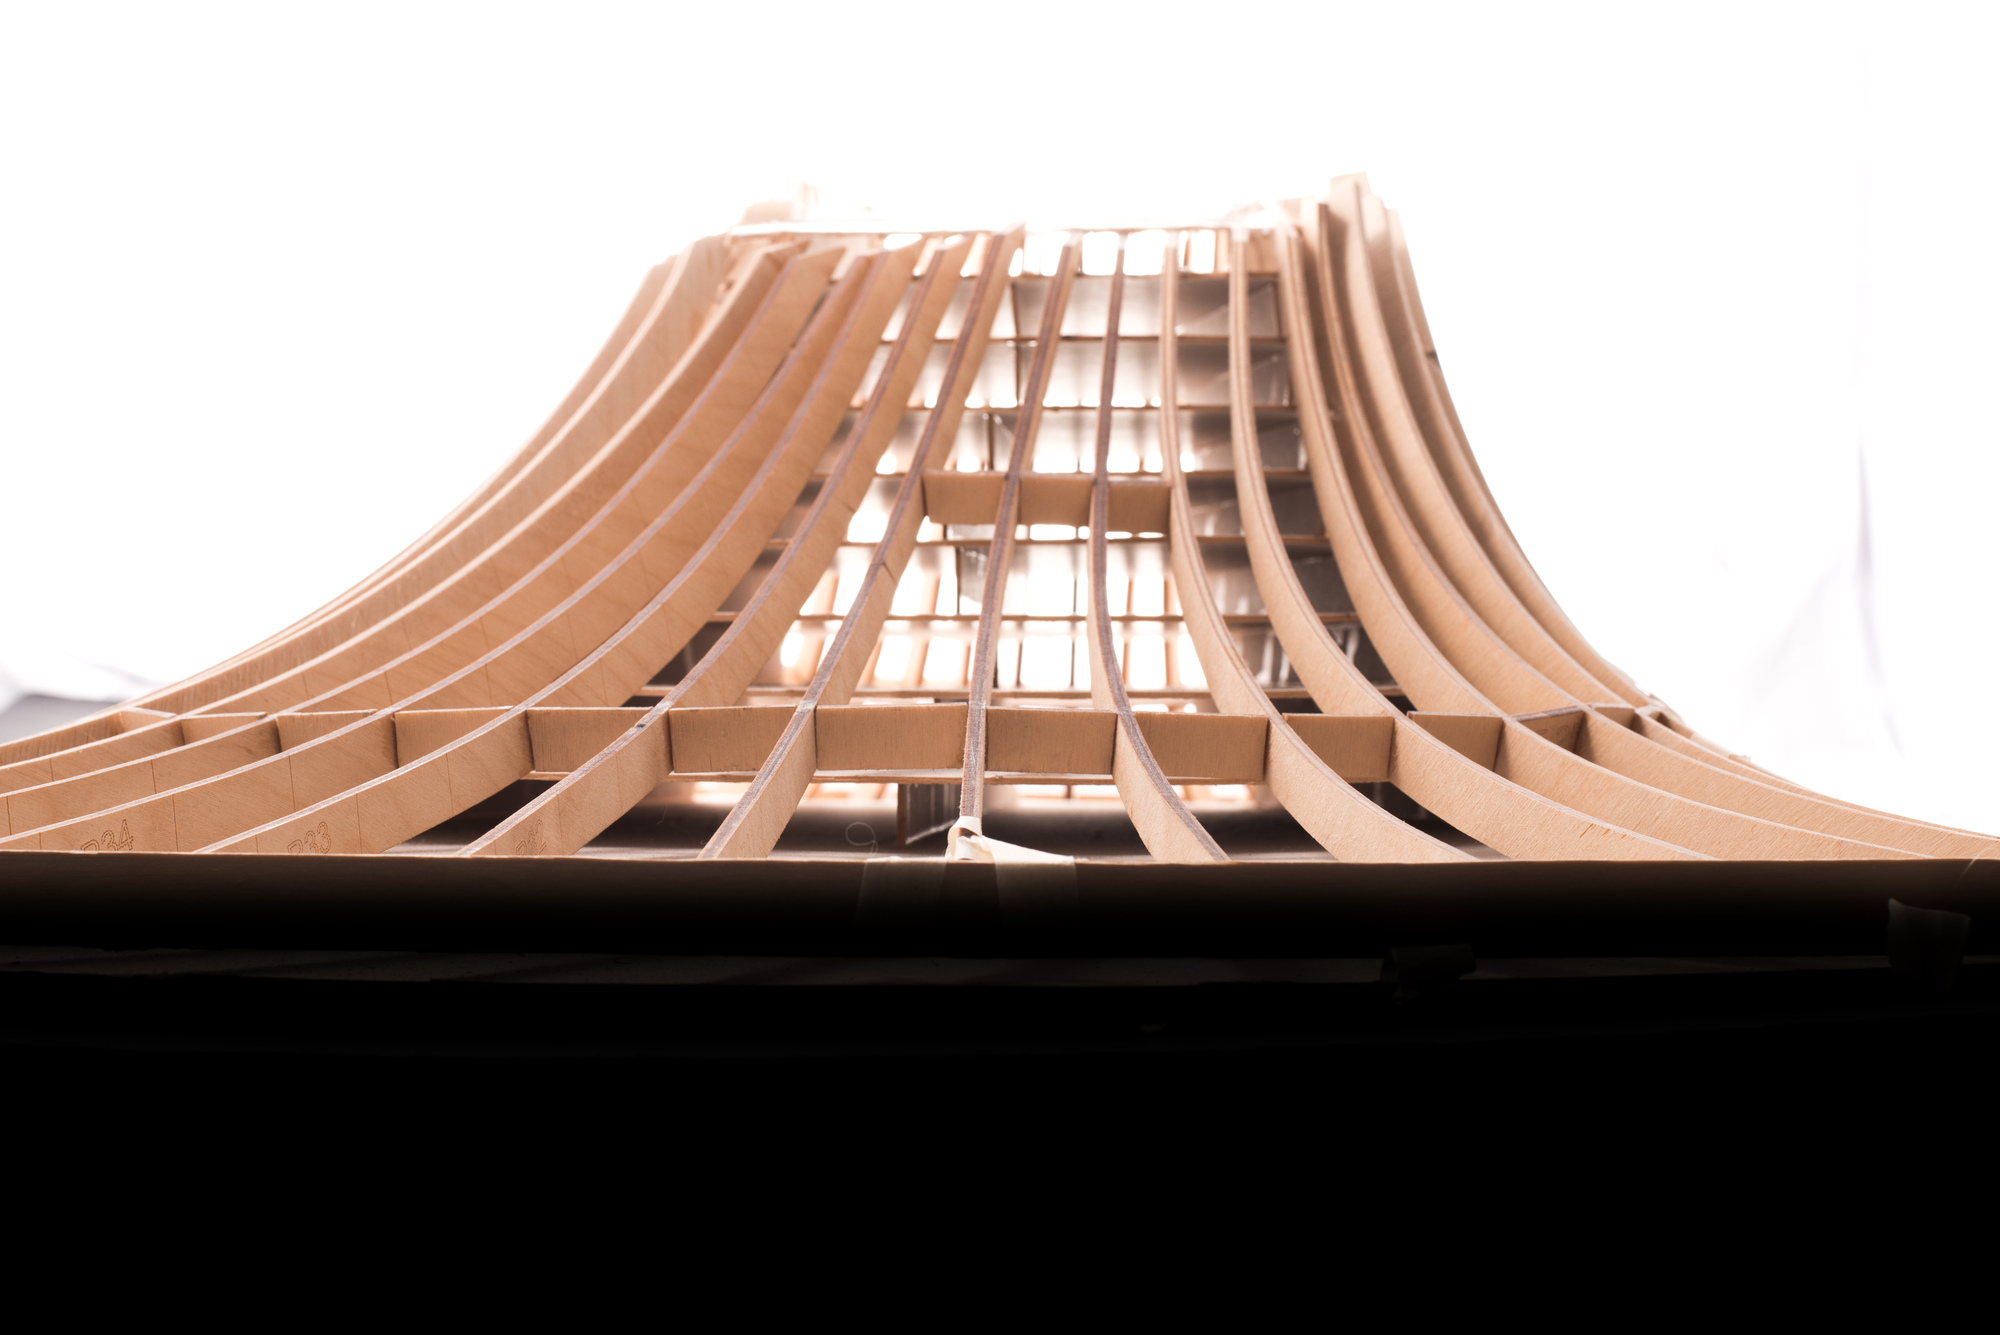 73_House_in_a_Garden_Ply_laser_cut_roof_model_02.jpg